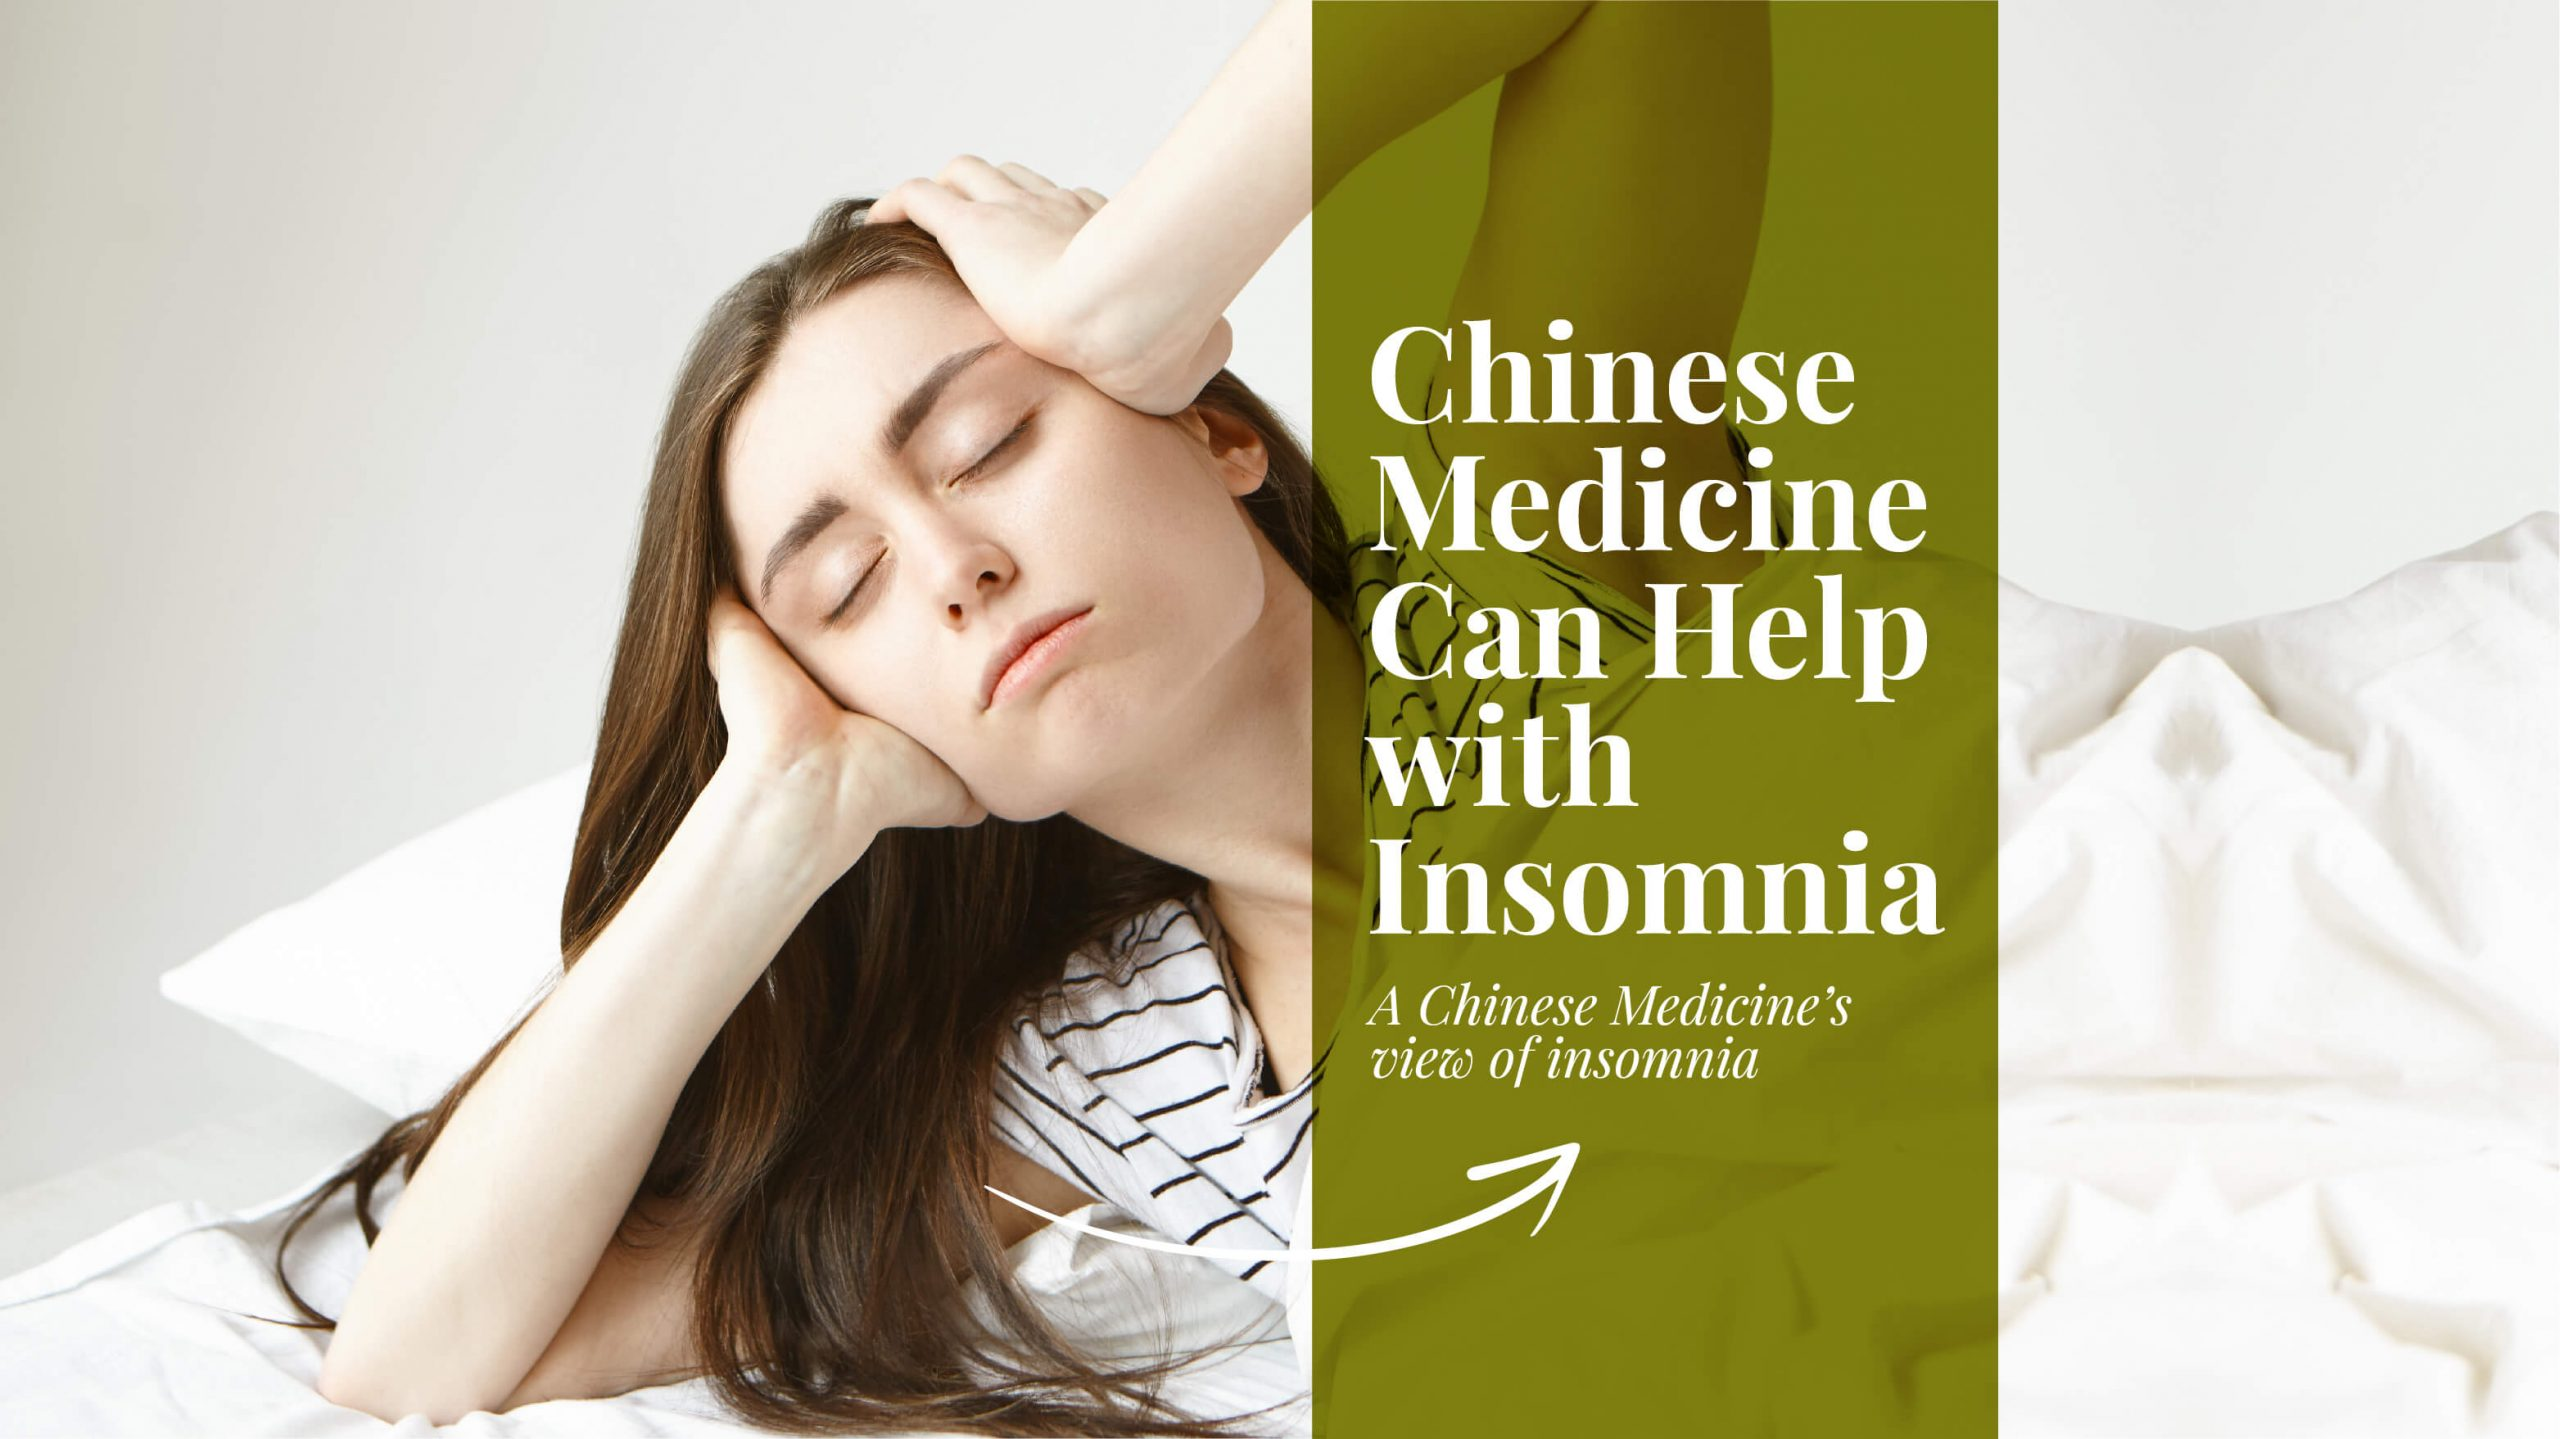 How Chinese Medicine Can Help With Insomnia